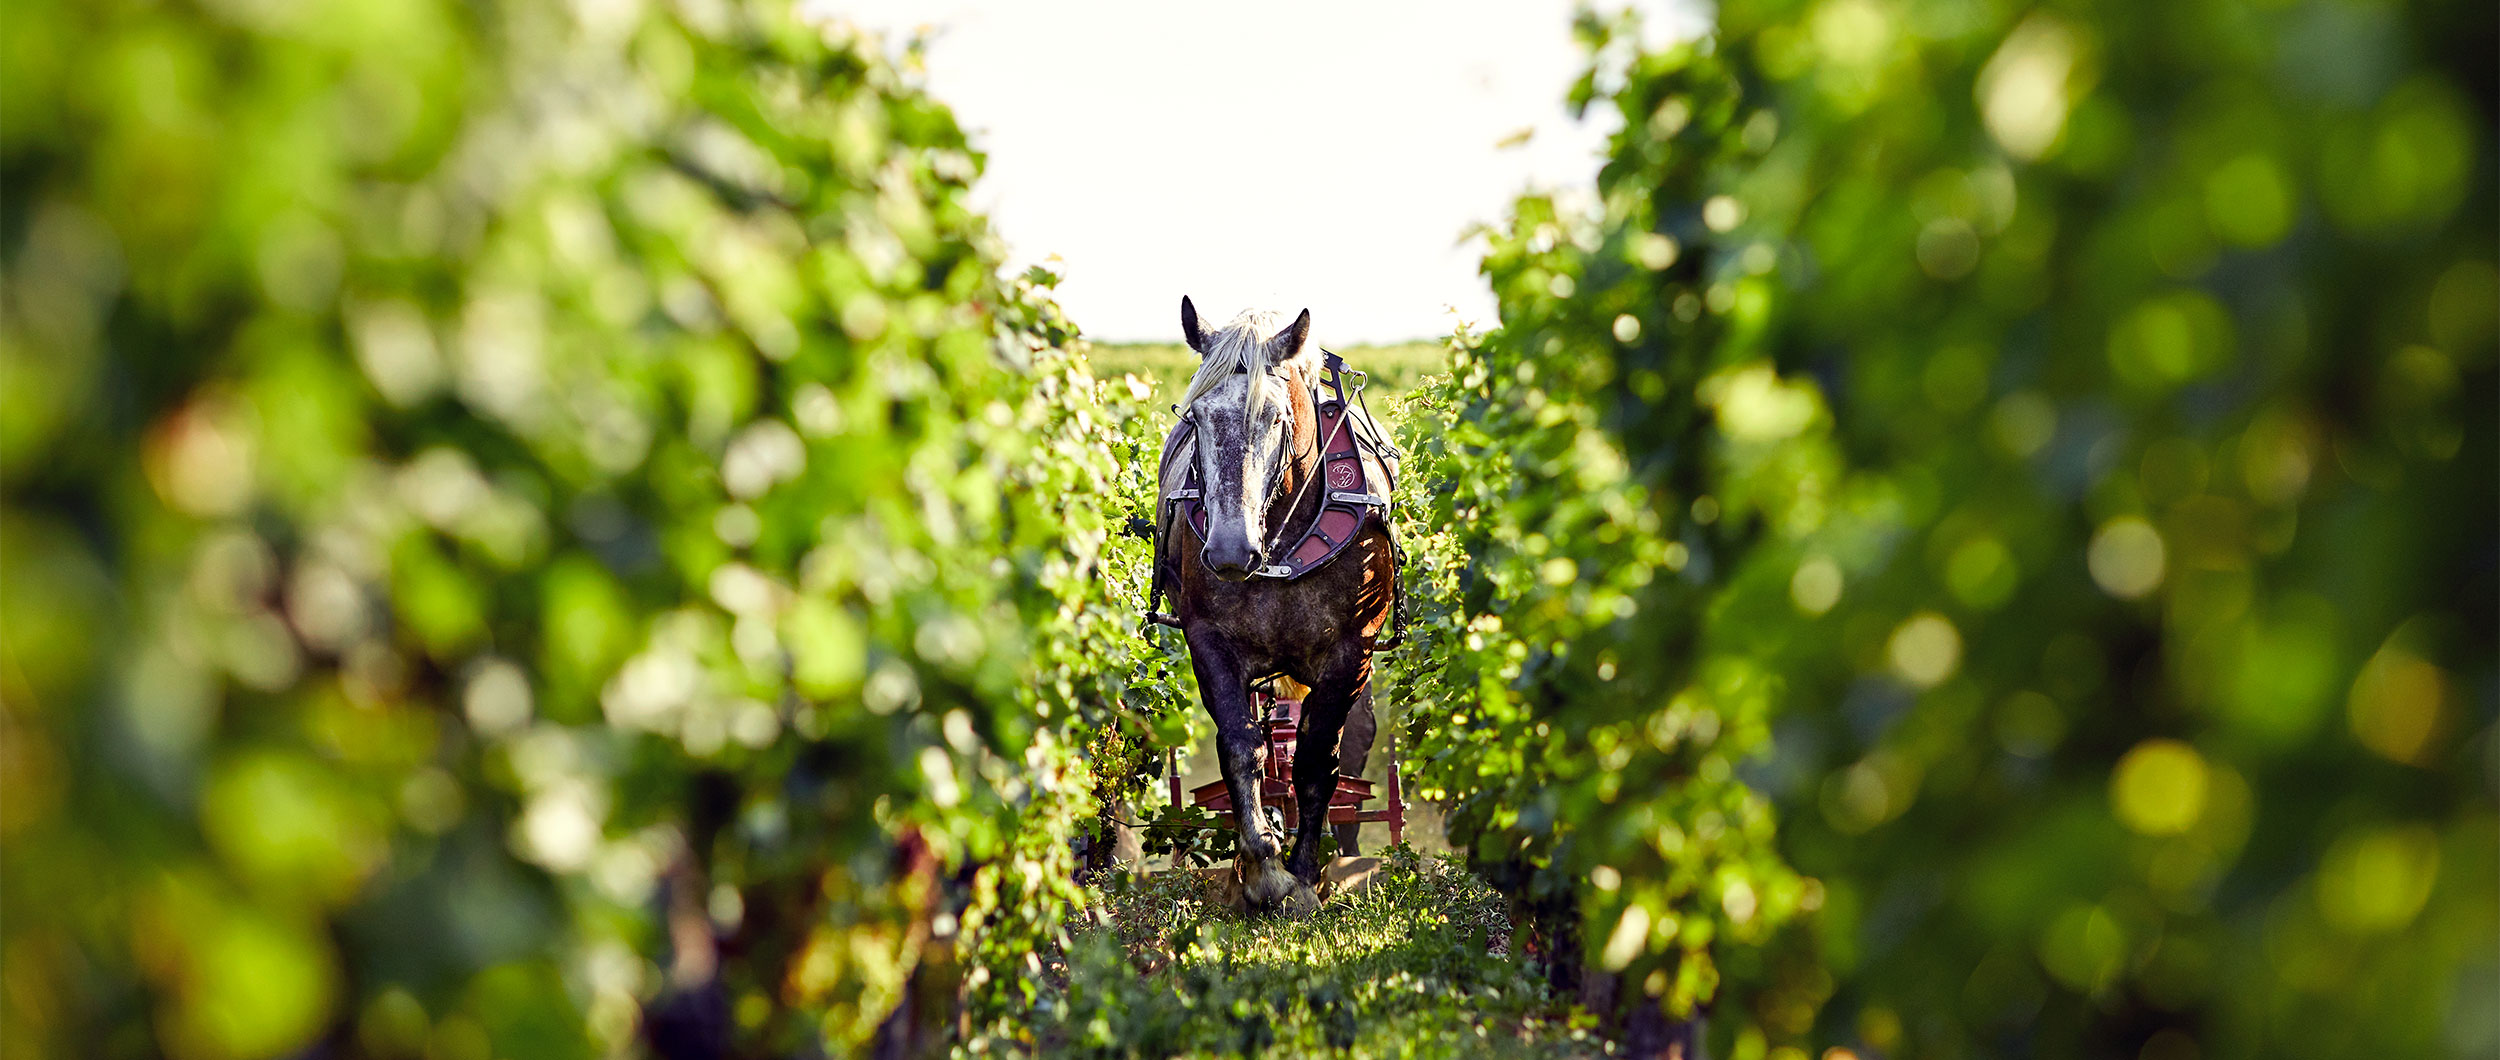 Explore the rich history of Bordeaux winemaking